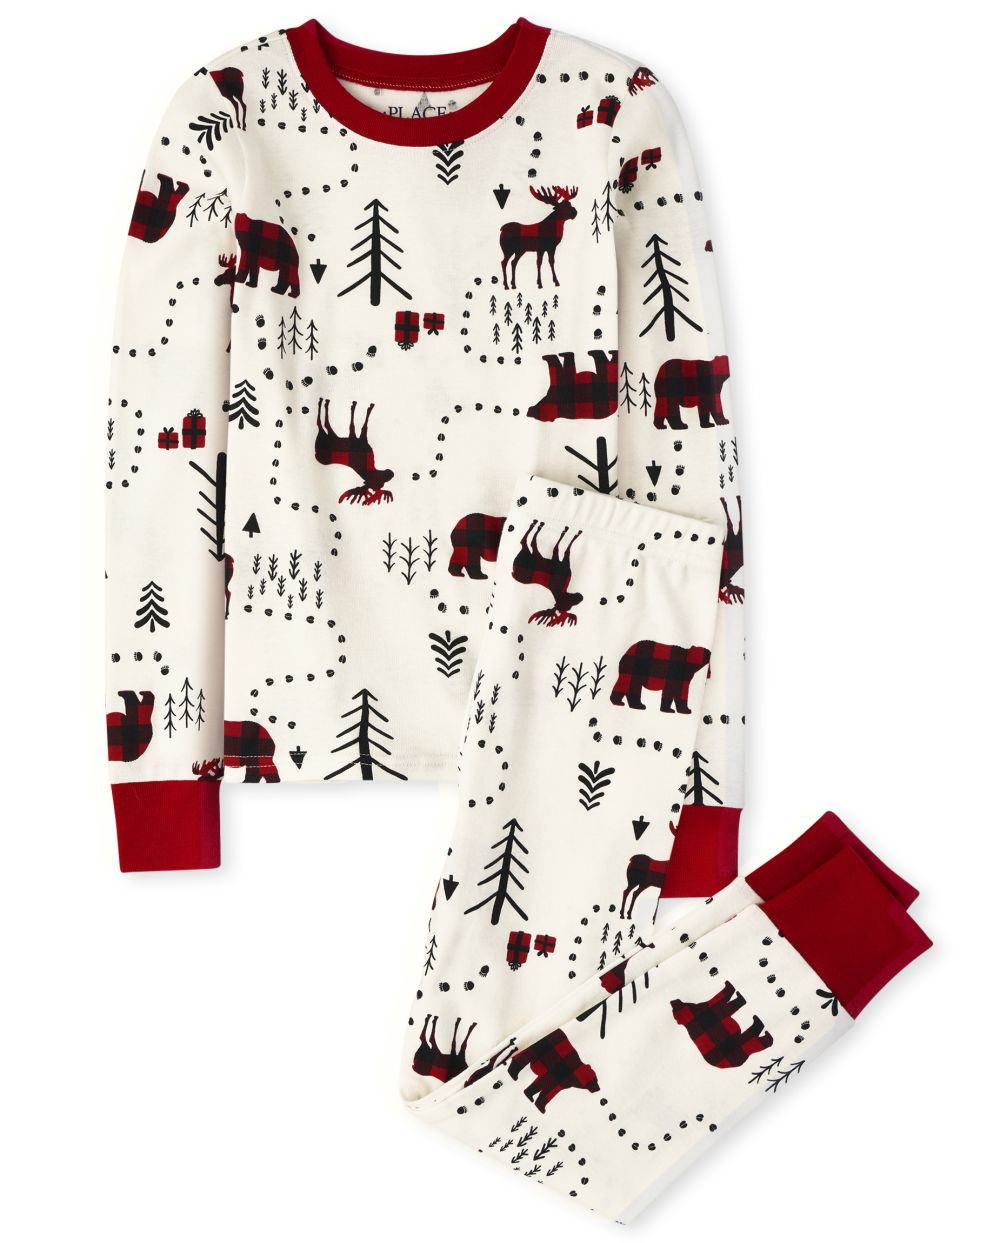 Unisex Kids Matching Family Winter Forest Snug Fit Cotton Pajamas